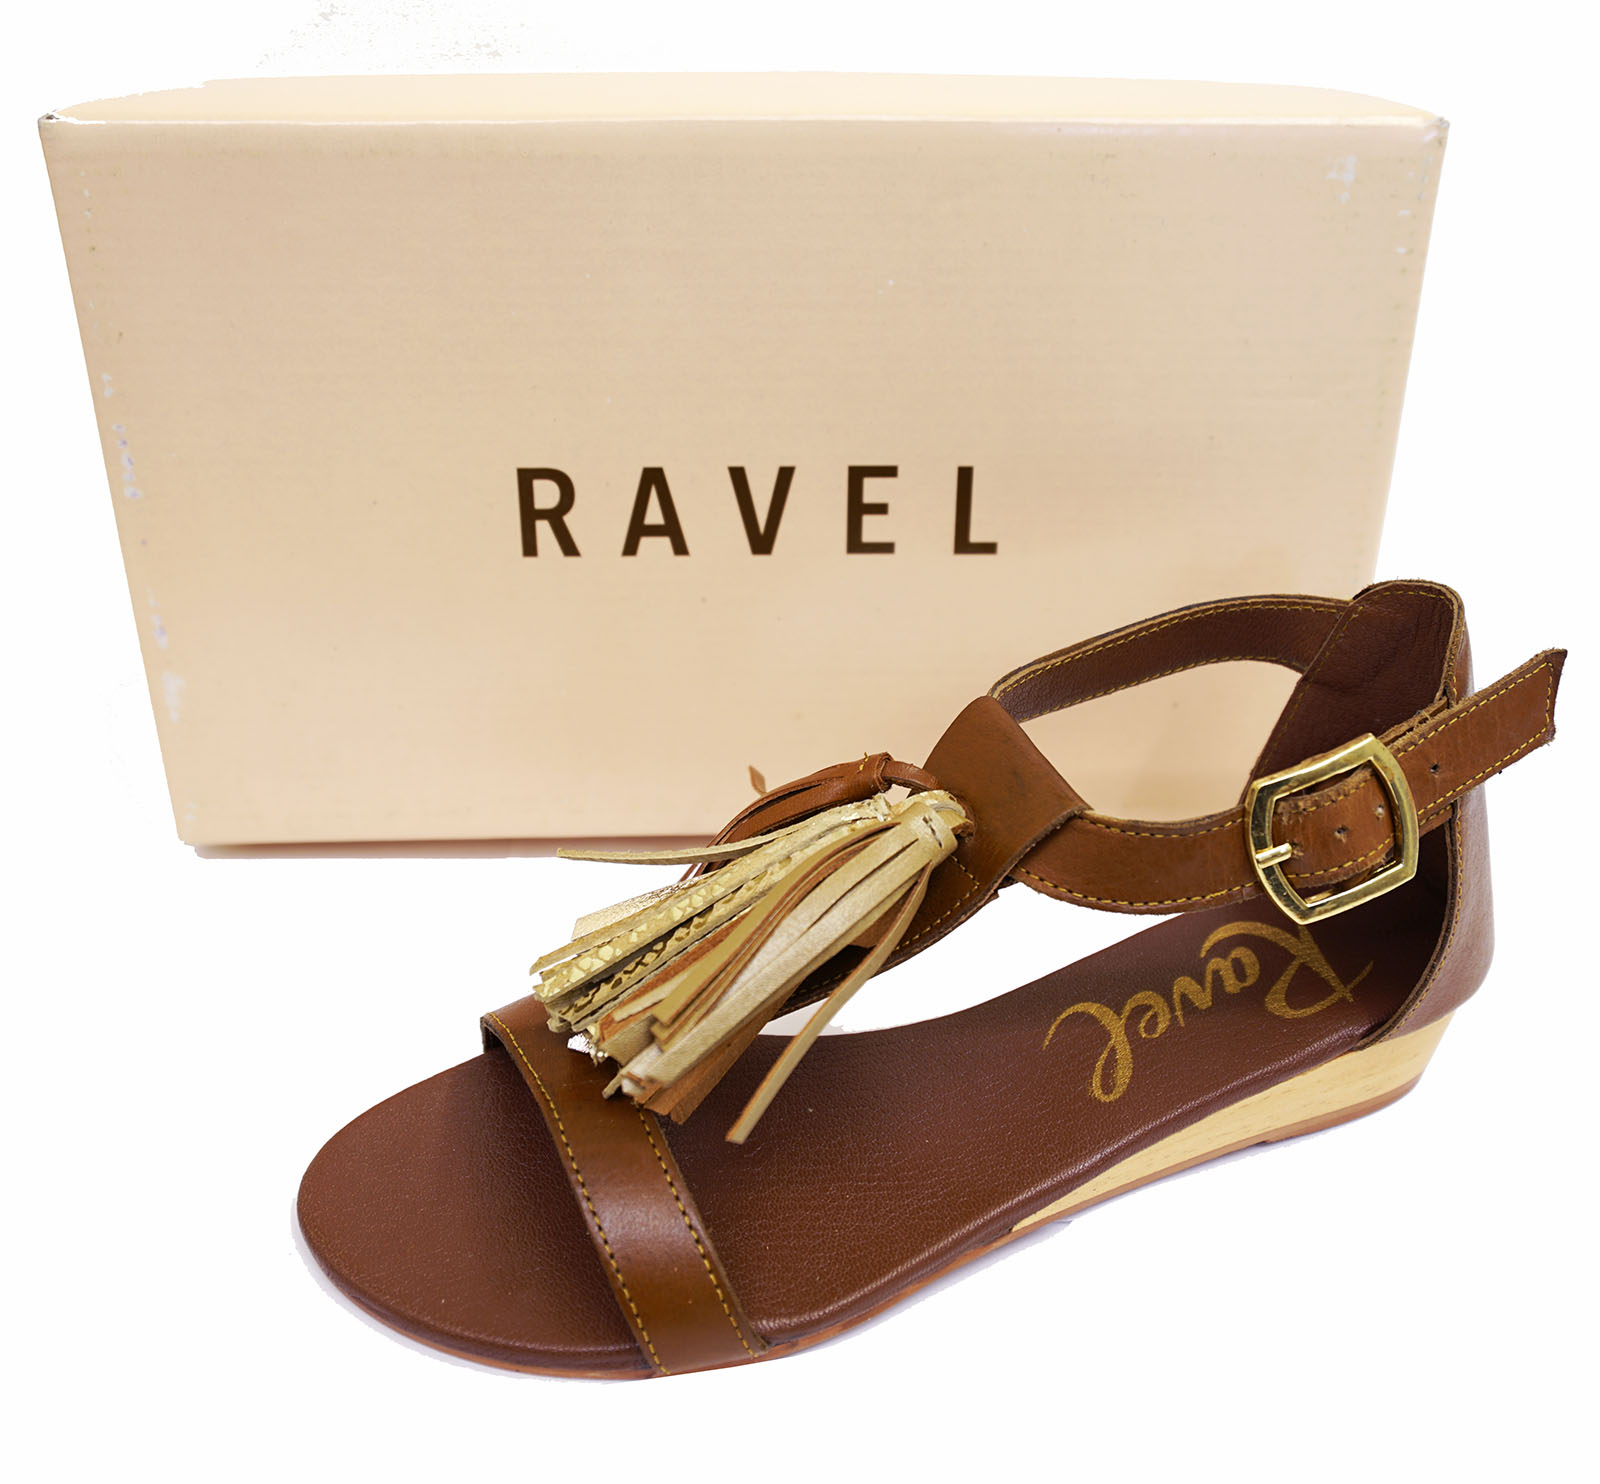 LADIES-RAVEL-ASTORIA-FLAT-LEATHER-TAN-SANDALS-SLIP-ON-T-BAR-STRAPPY-SHOES-UK-3-8 thumbnail 14